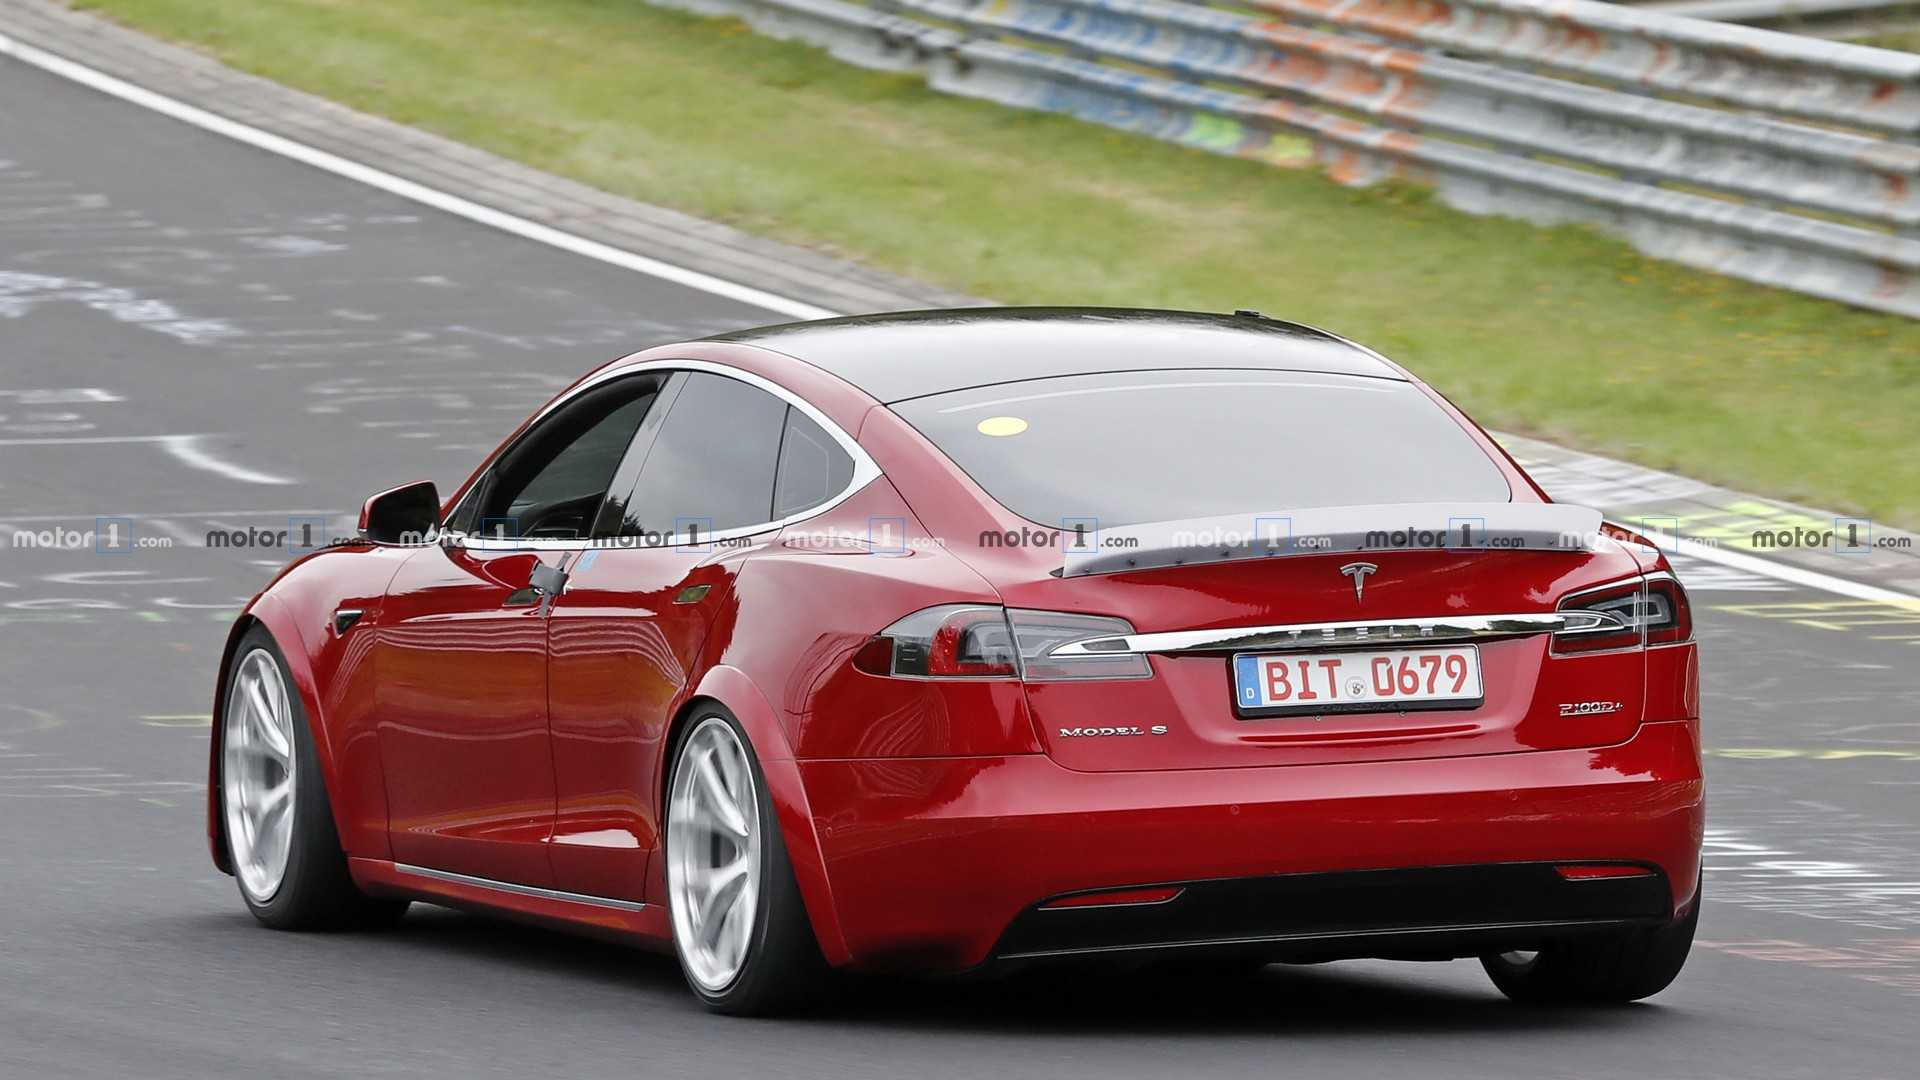 tesla-model-s-plaid-spy-photo.jpg